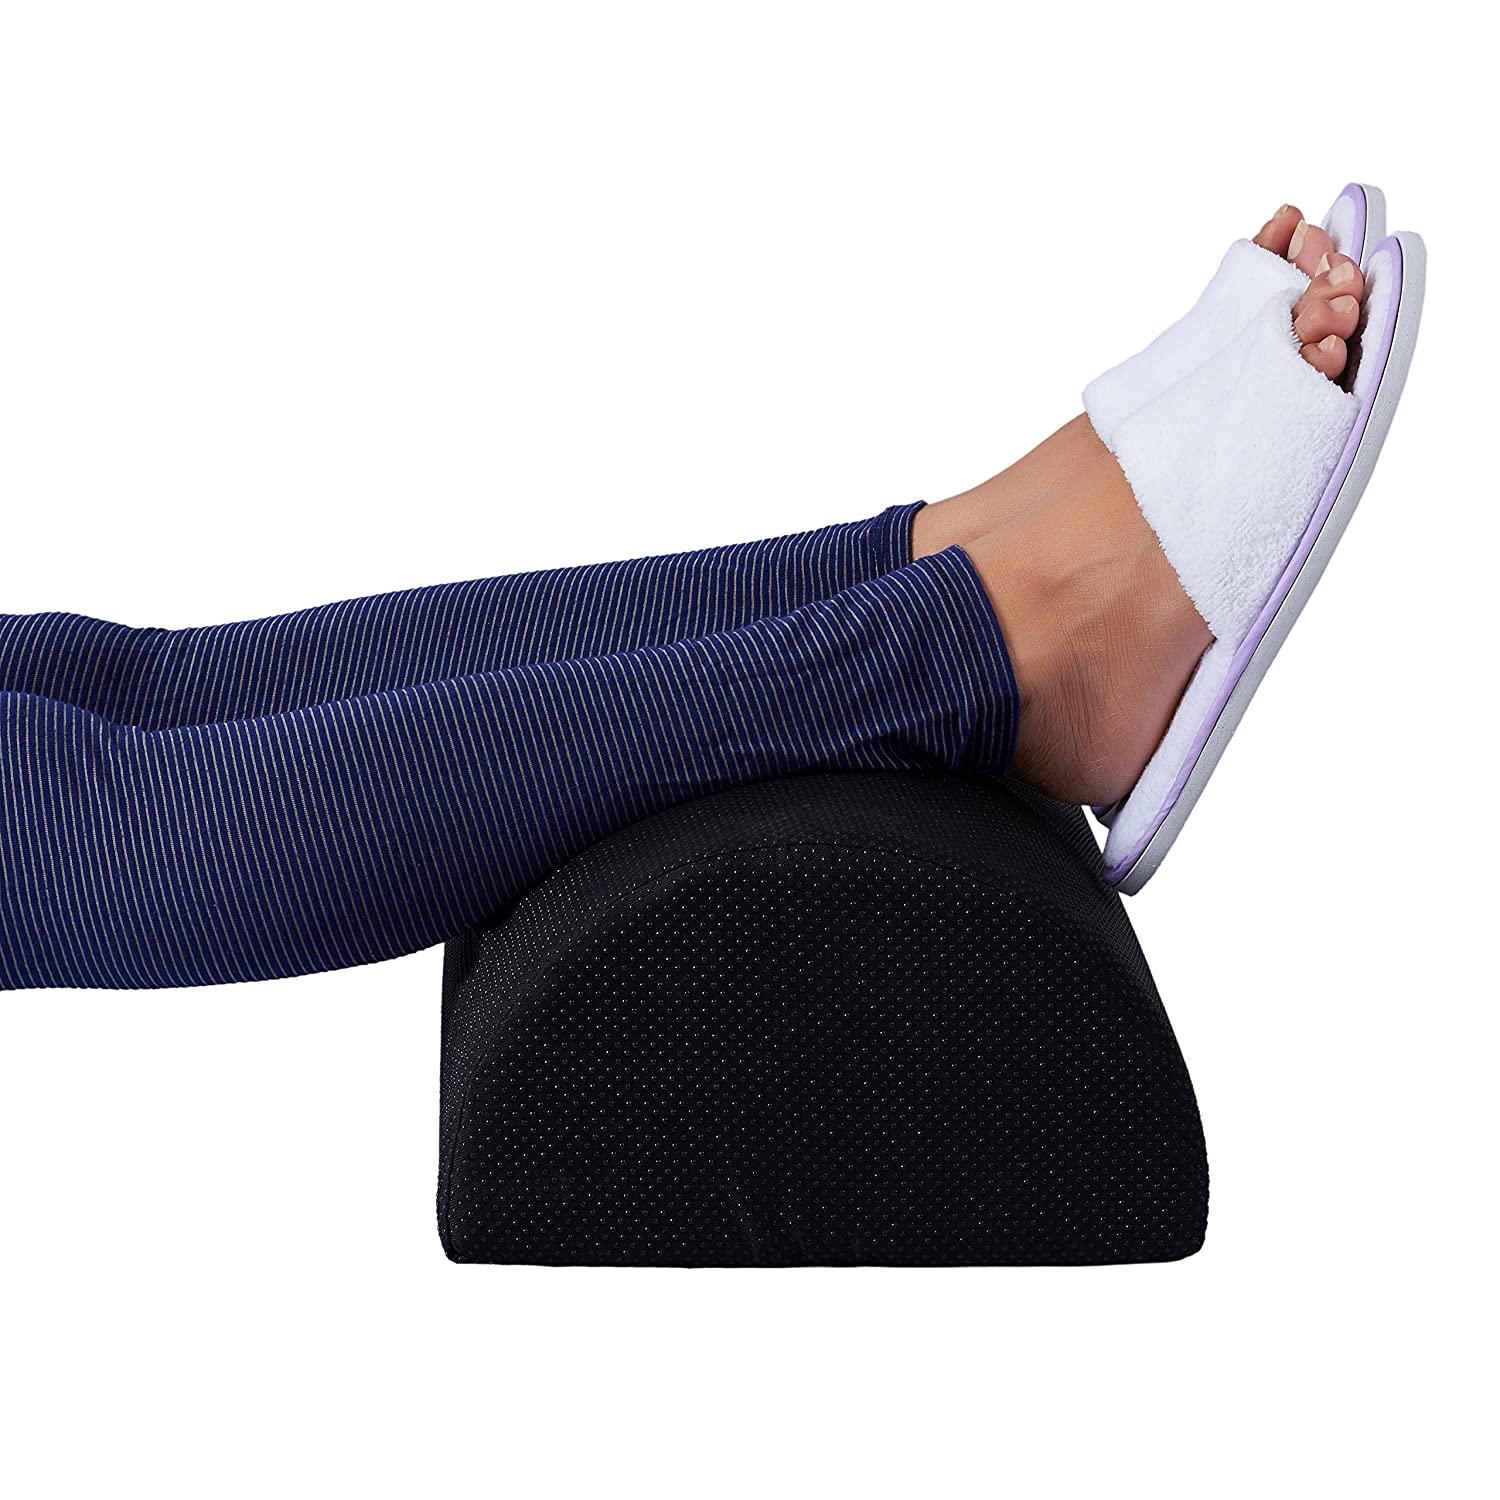 Amazoncom Foot Rest Cushion To Relieve Knee Pain Tired Aching - Elevate feet